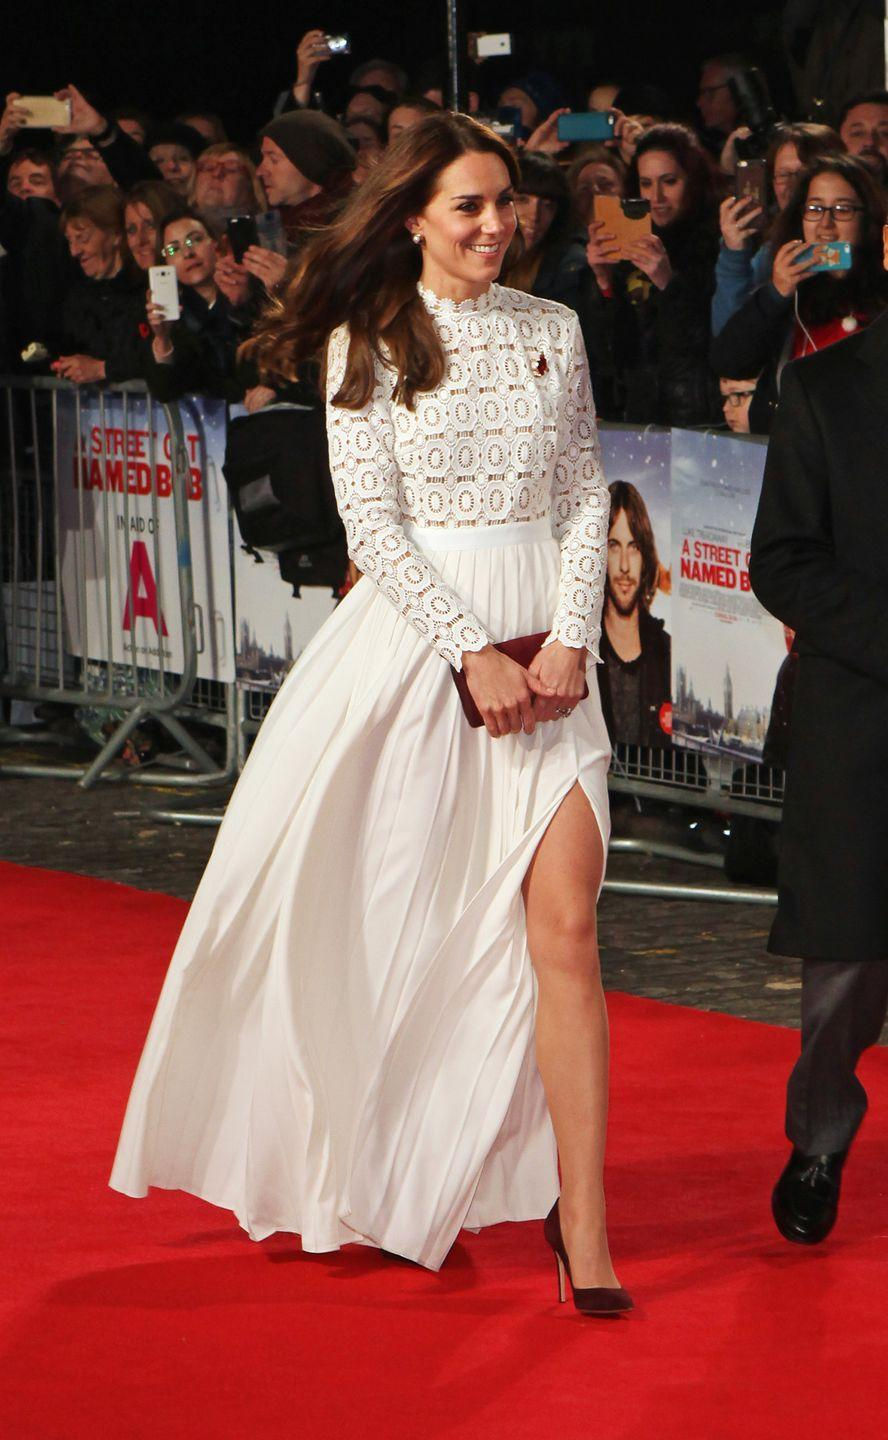 <p>While attending a film premiere in London, the Duchess wore a stunning white gown by designer Self-Portrait, complete with a crochet bodice, poppy pin, and thigh-high side slit.</p>